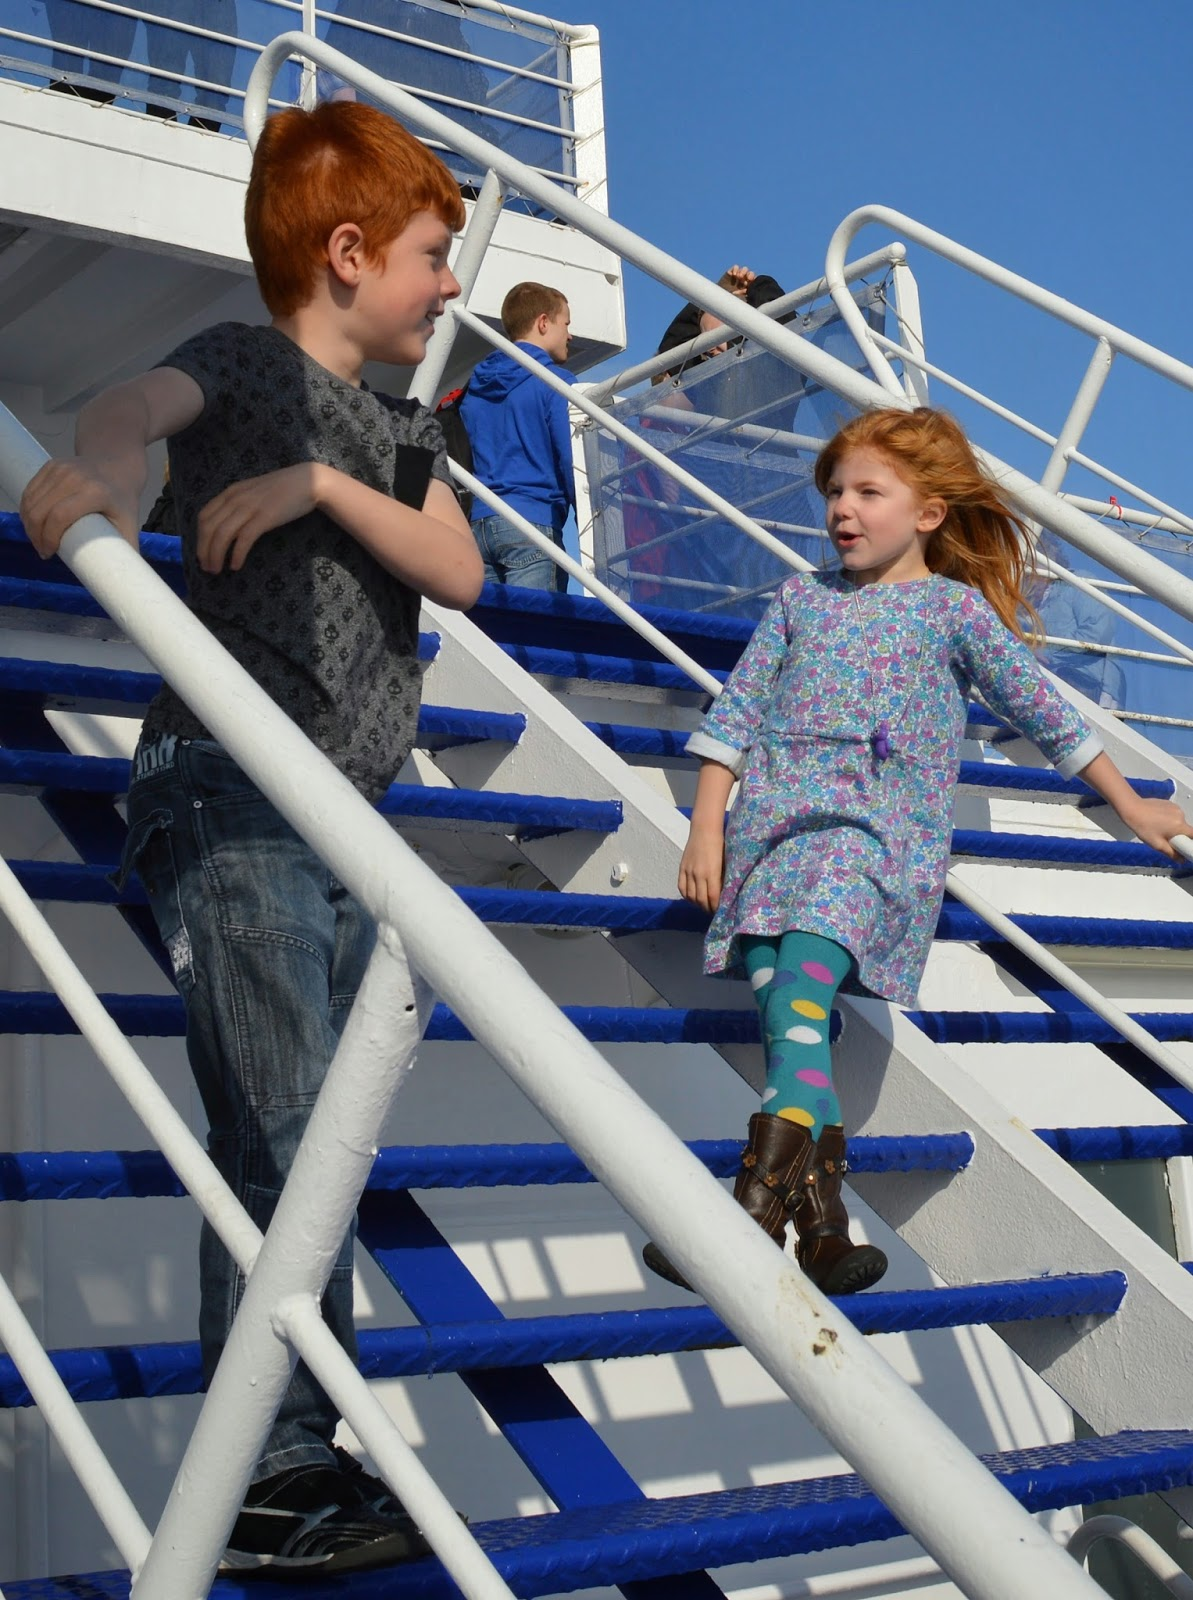 Children on deck